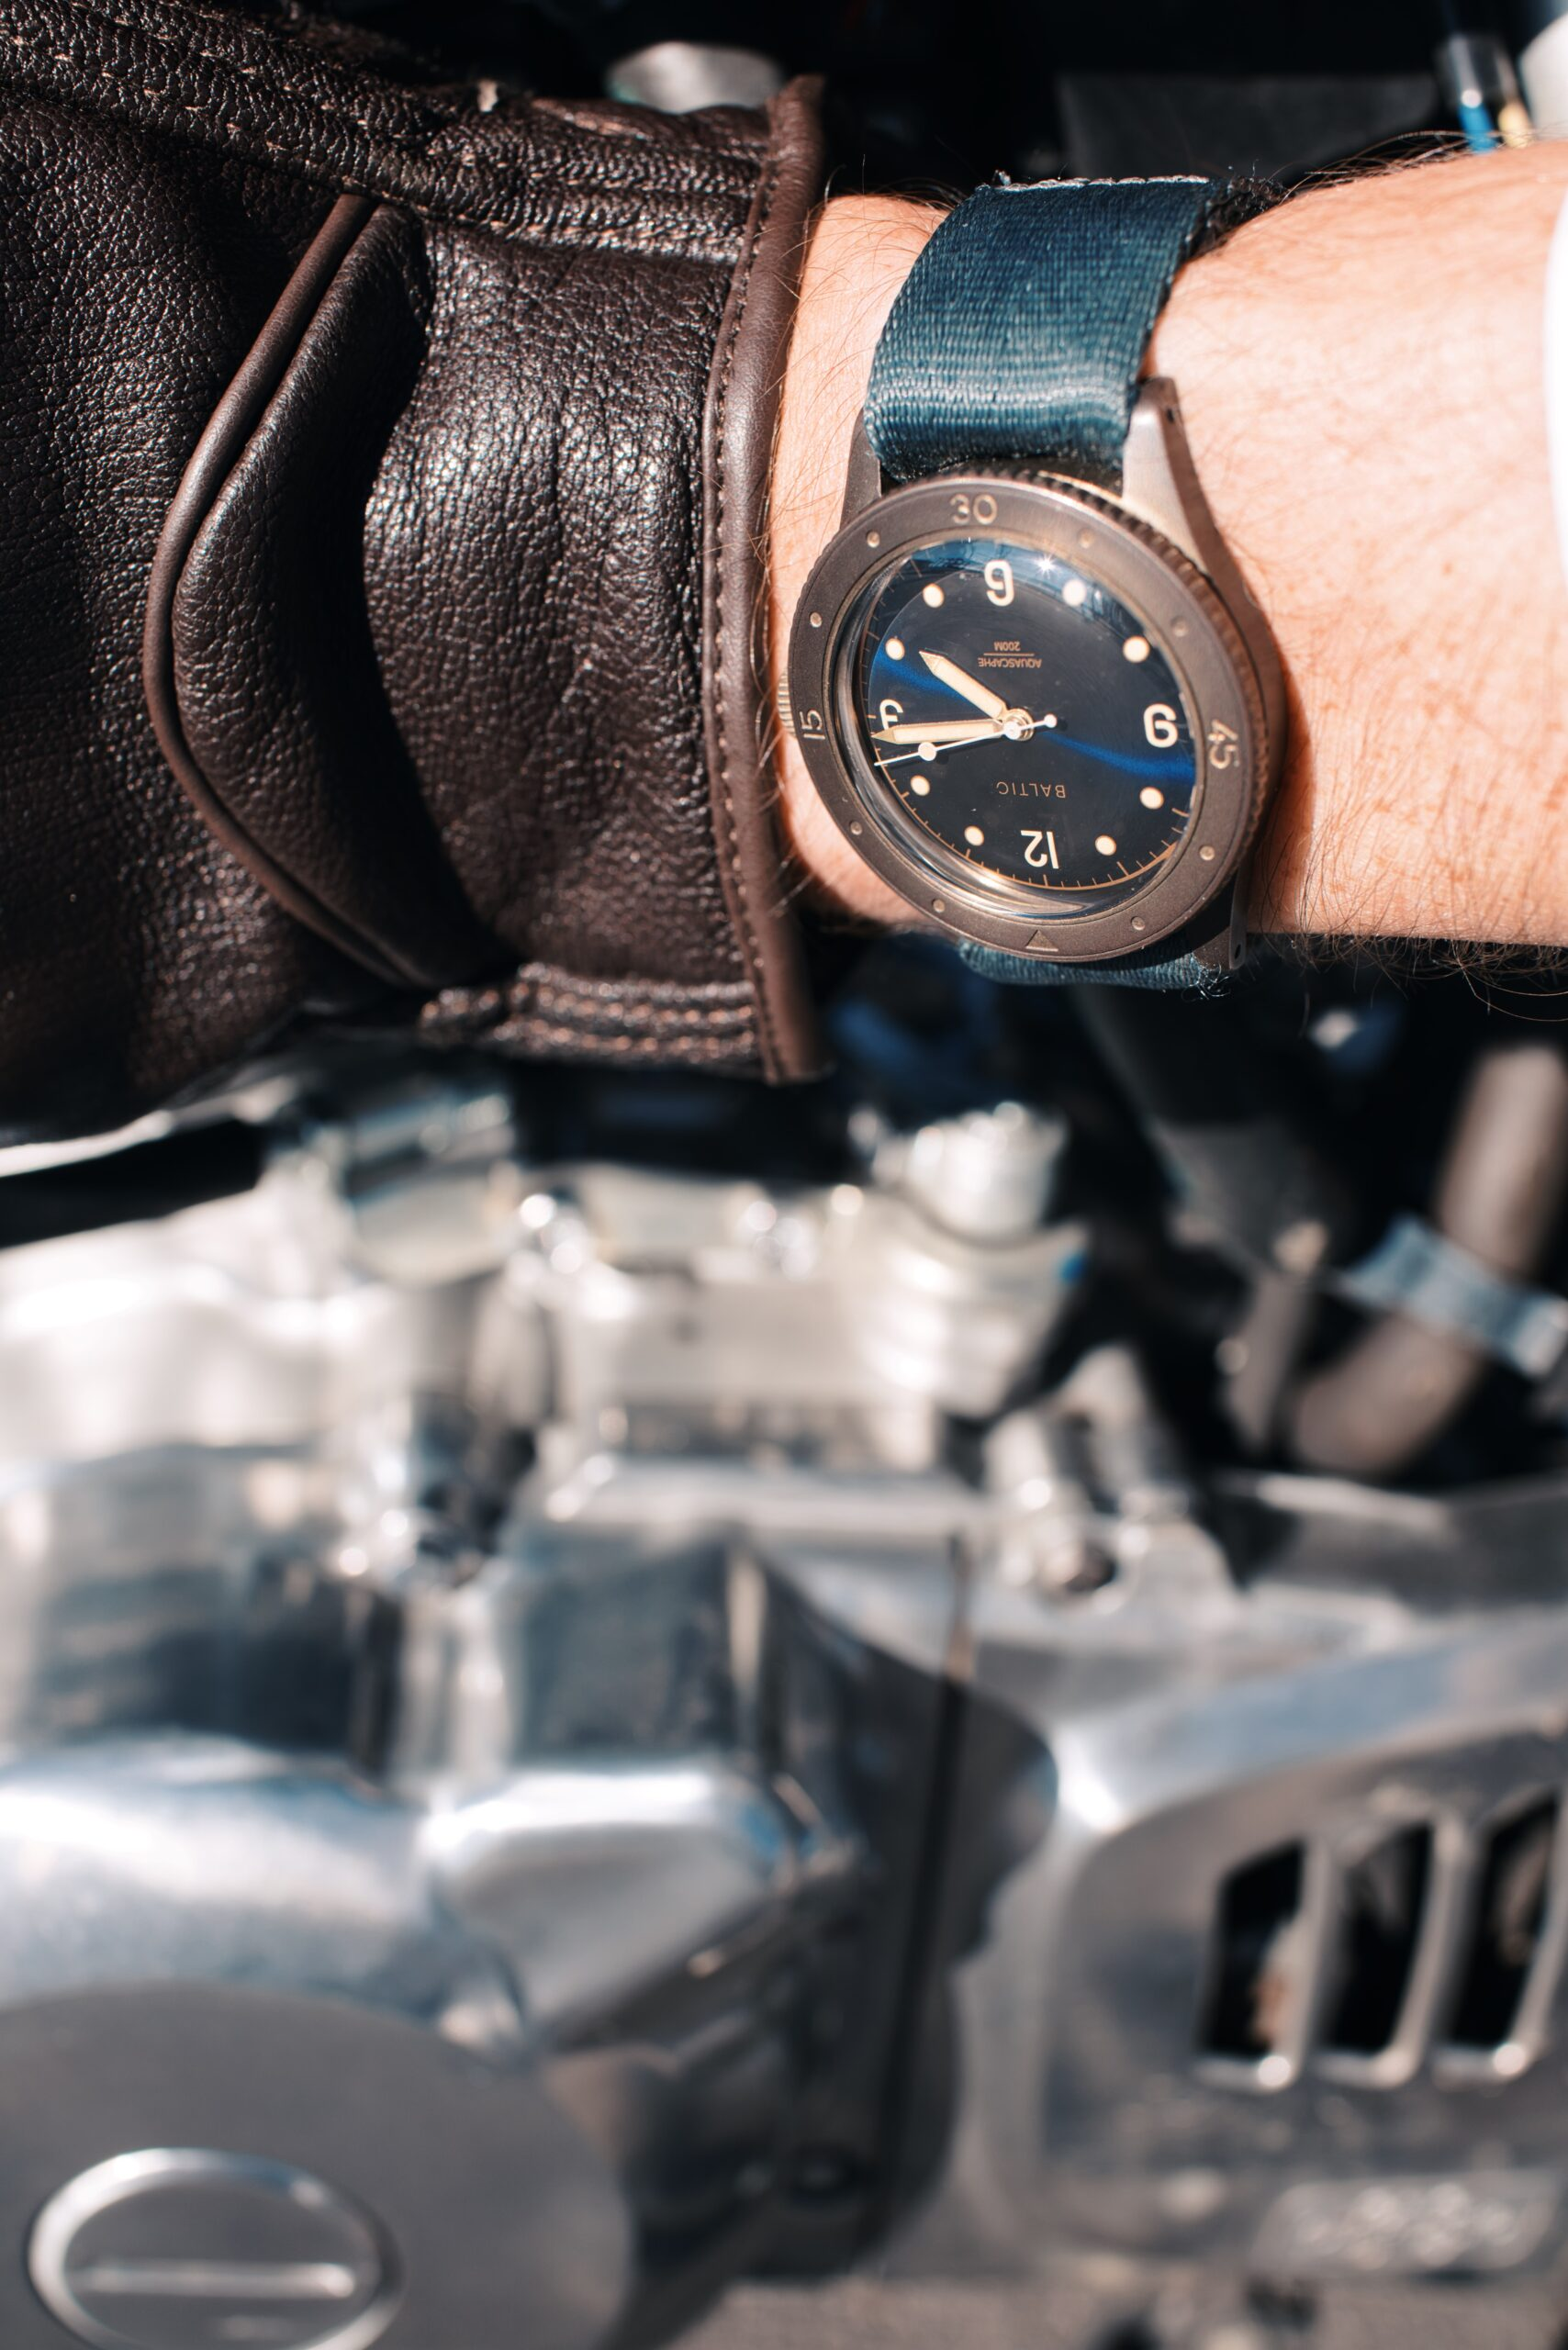 Tuning things engine side before riding in the DGR (Distinguished Gentleman's Ride) 2020 with the Baltic bronze on wrist, grey Zulu Alpha strap, and motorcycle engine in background (hand with glove)